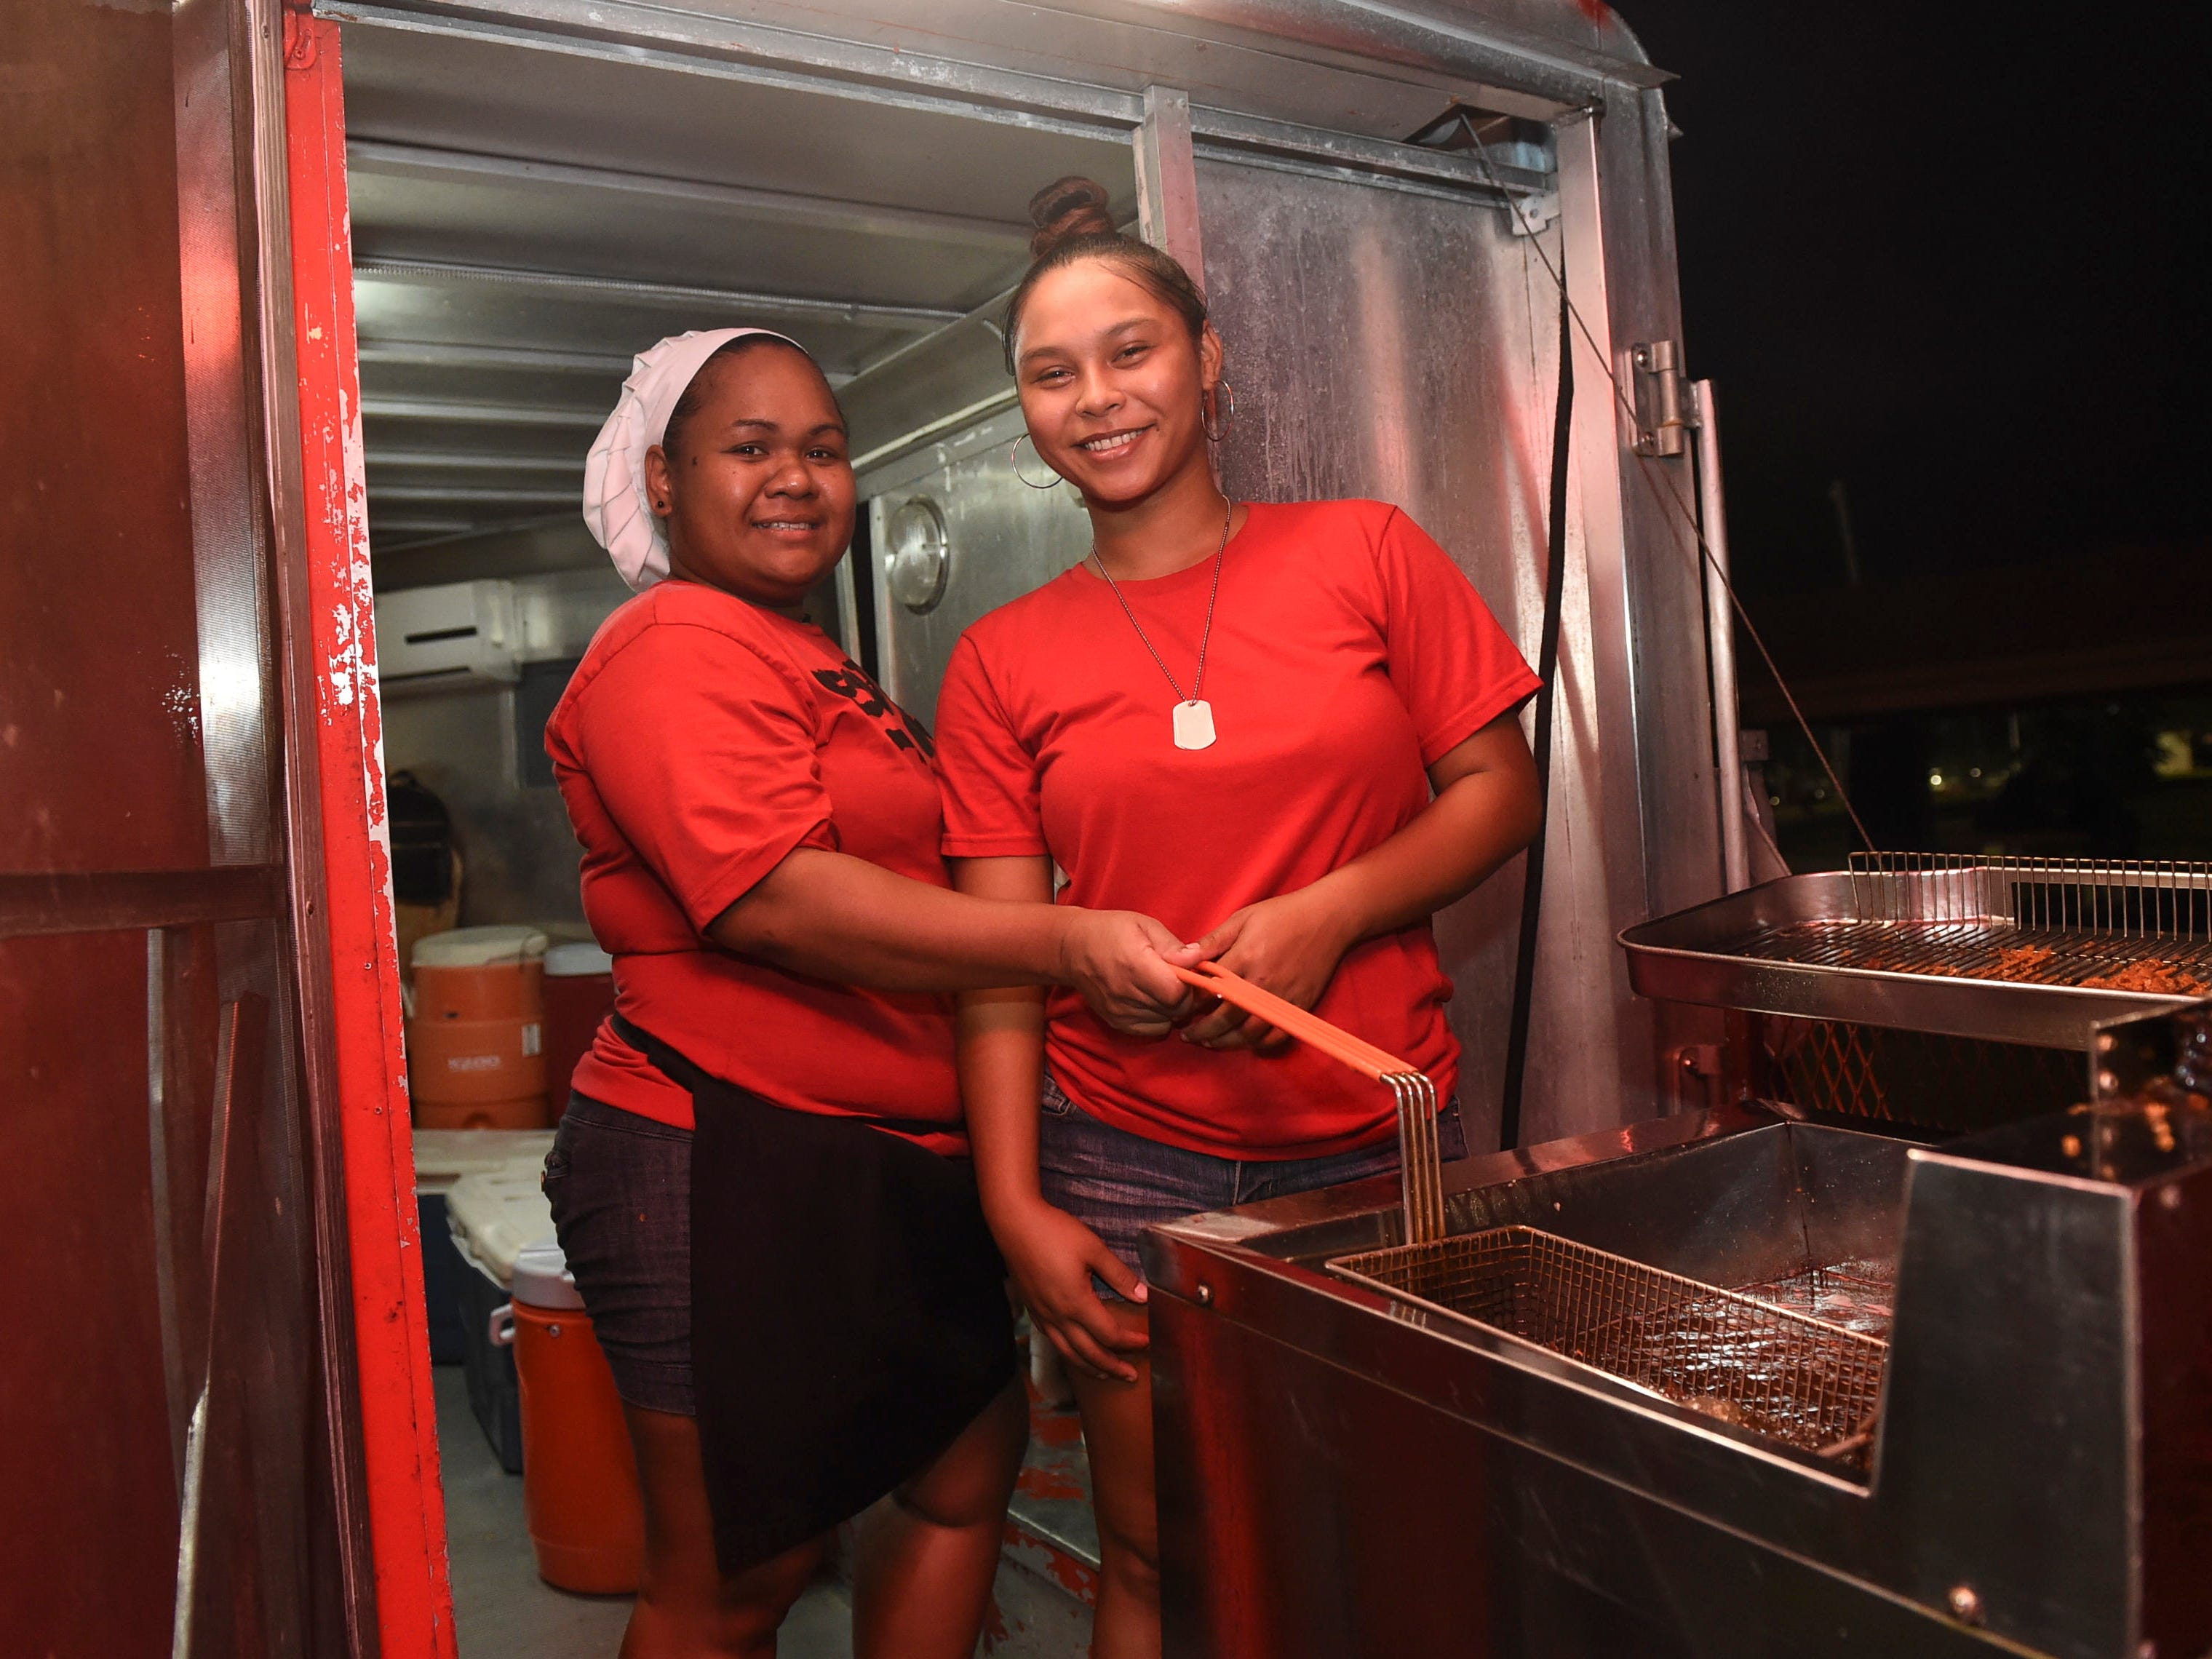 Sip N' Dip Guam and Shave It employees Jadene Ongesii, left, and Liela Evaristo during New Year's Eve at the Gov. Joseph Flores Beach Park on Dec. 31, 2018.